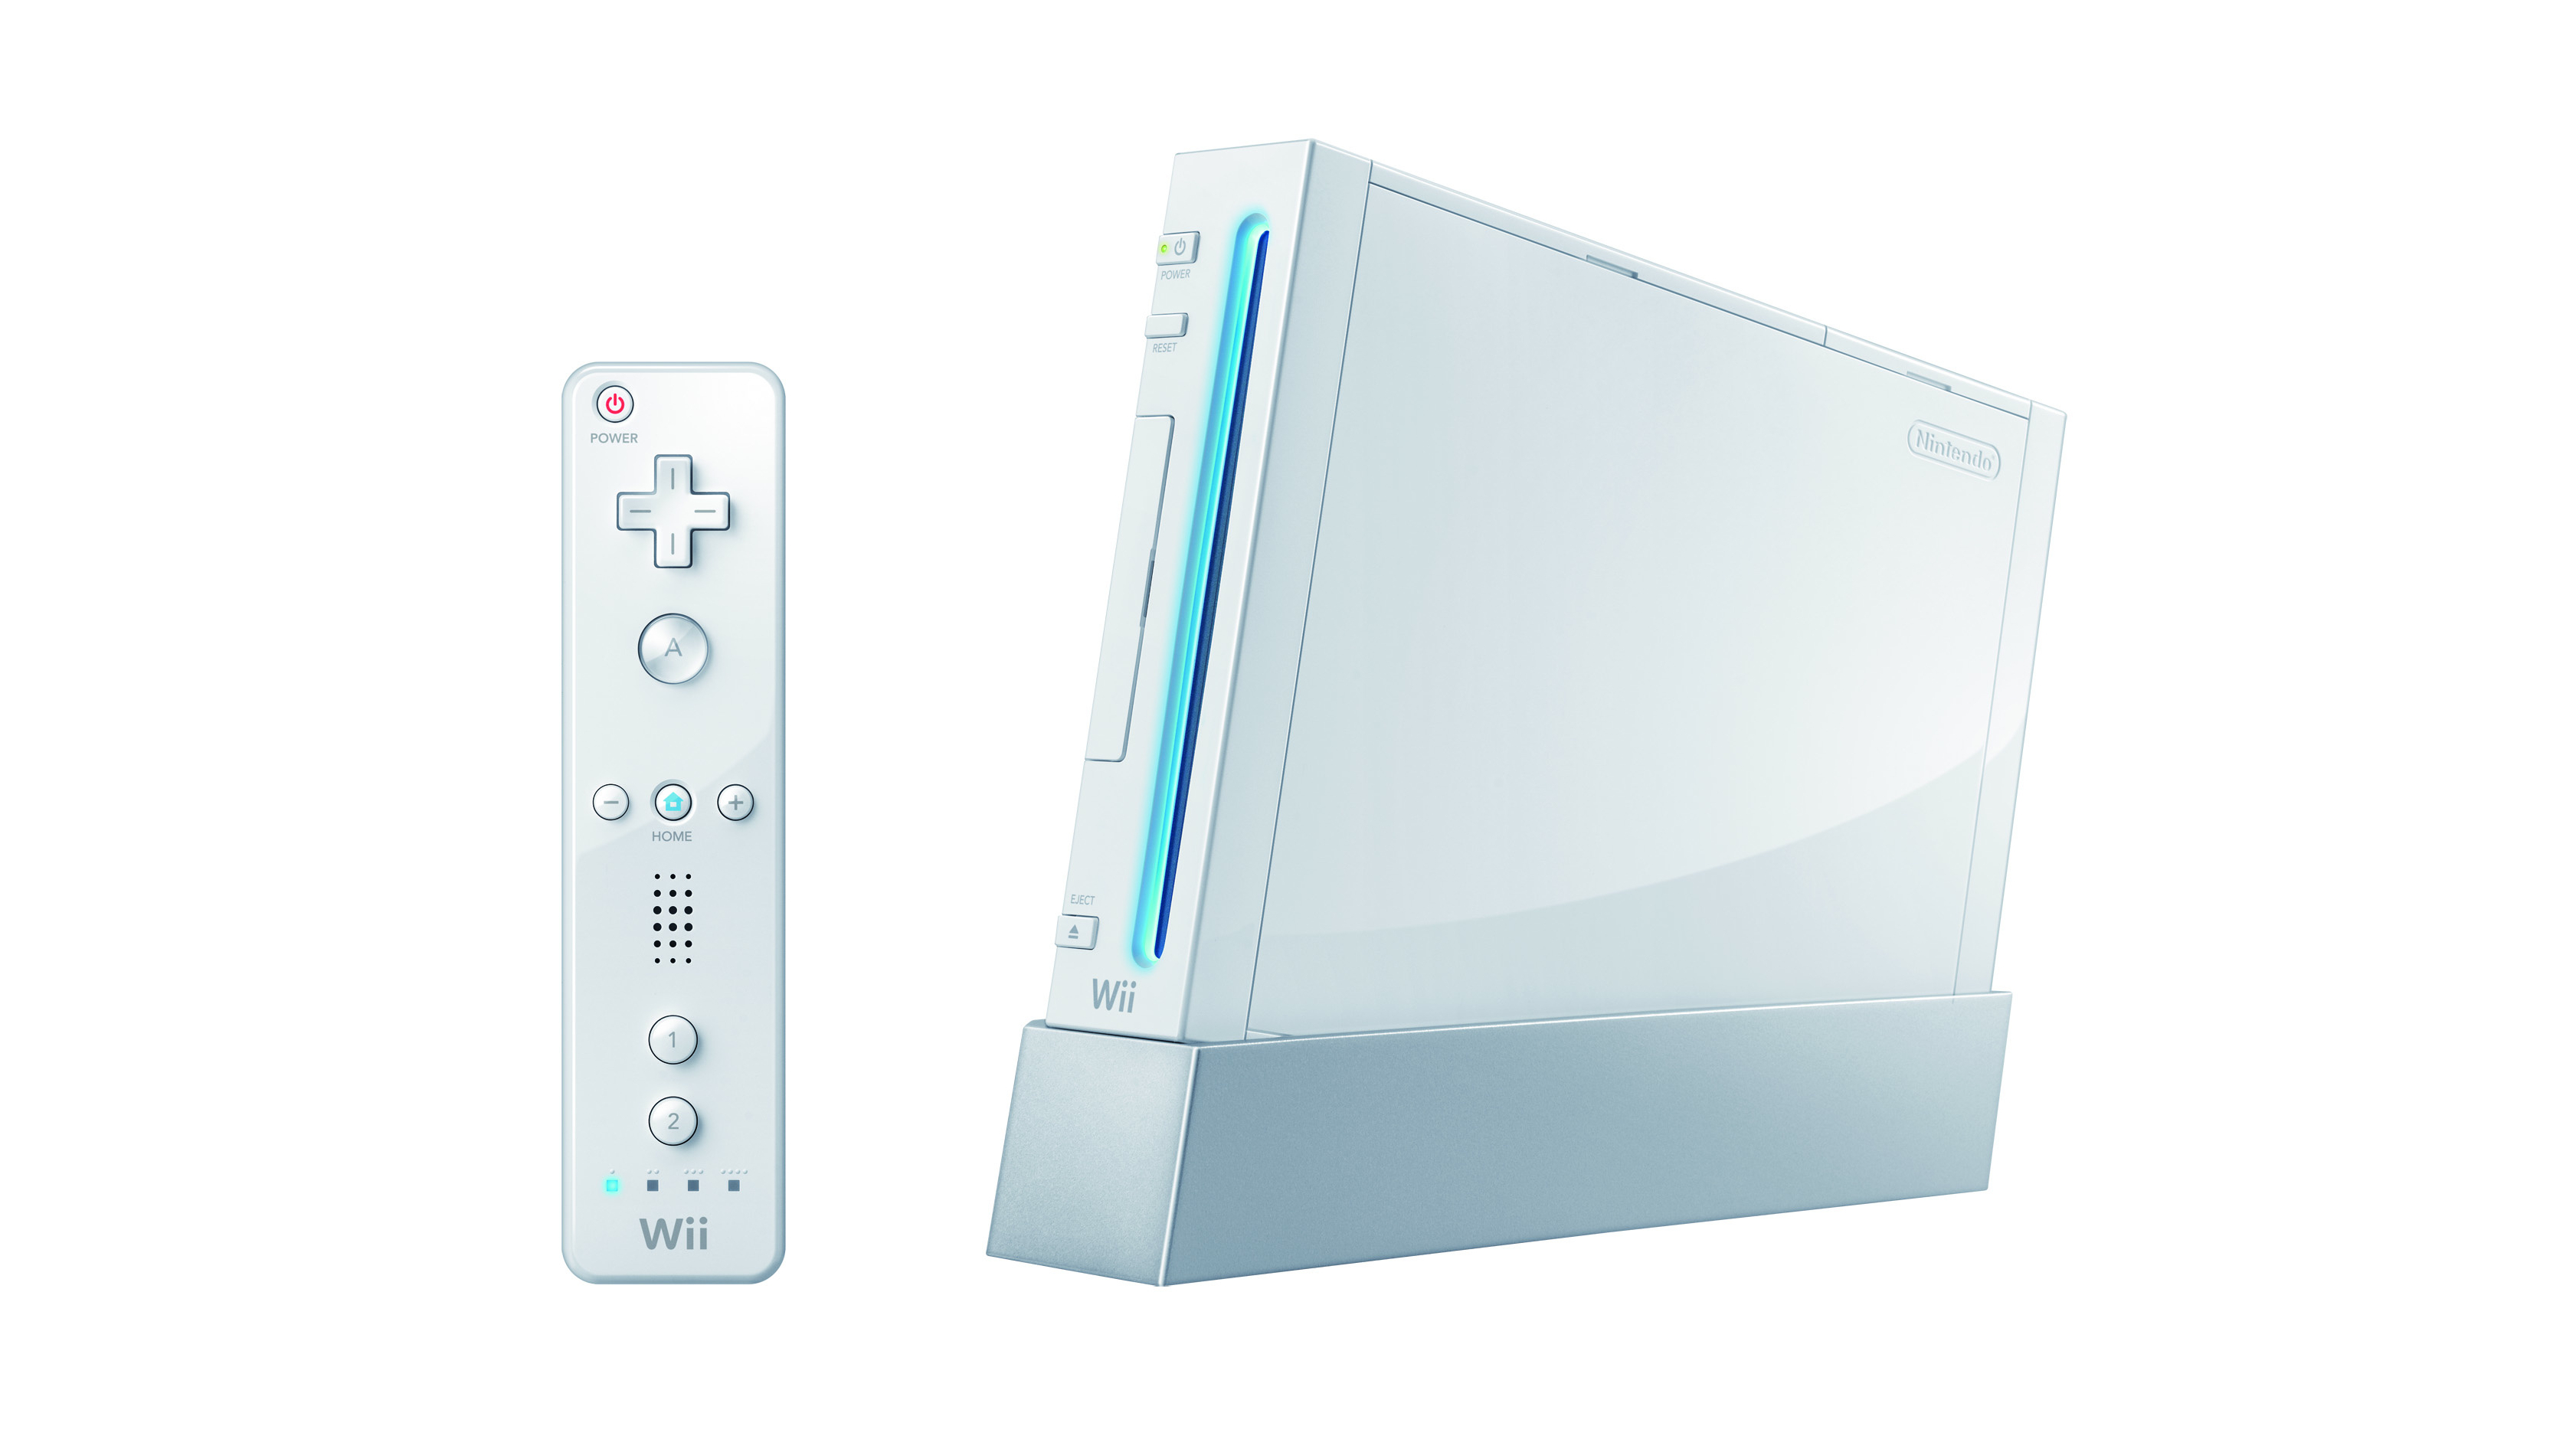 How to sell your Wii: how to get the most from your old